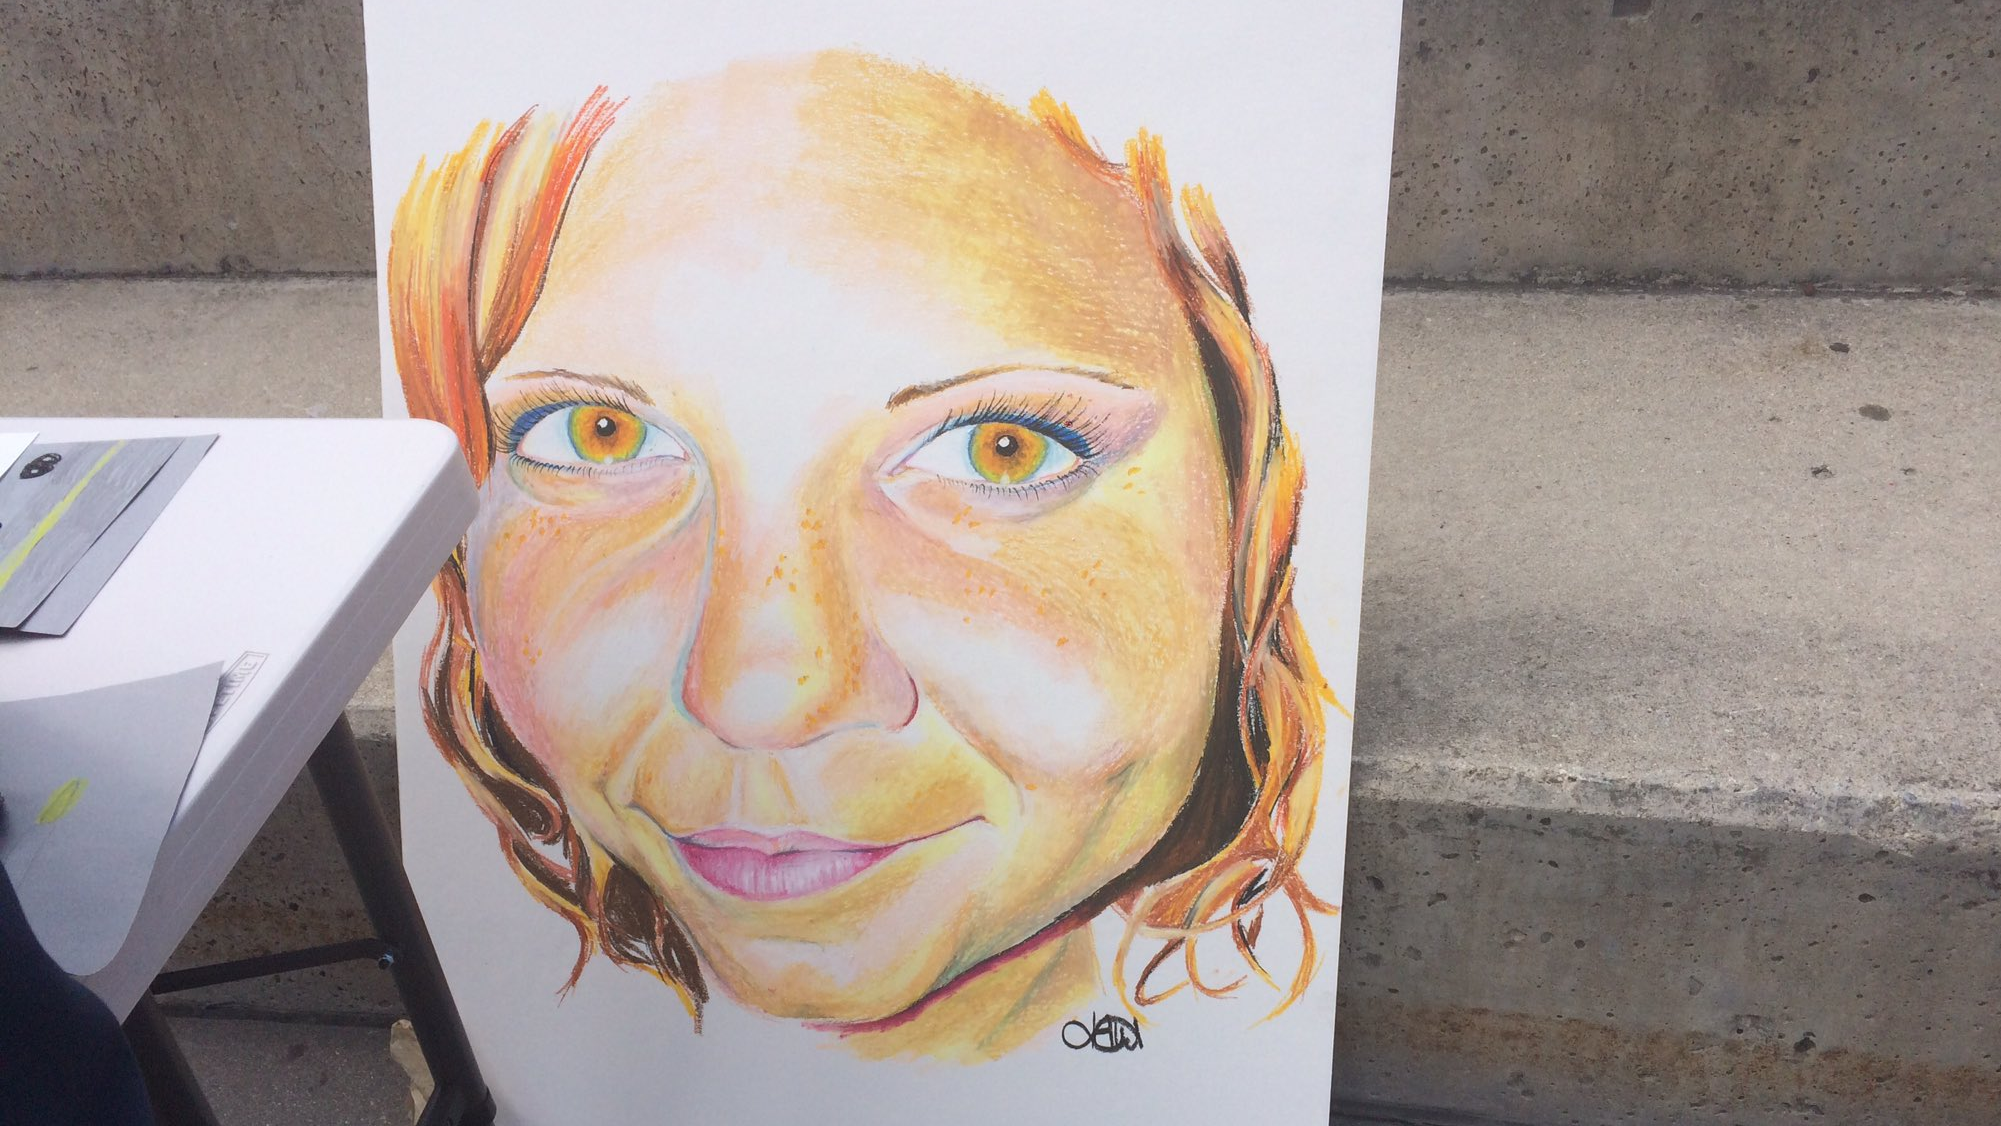 Painting honouring Heather Heyer who was killed during the Charlottesville attacks